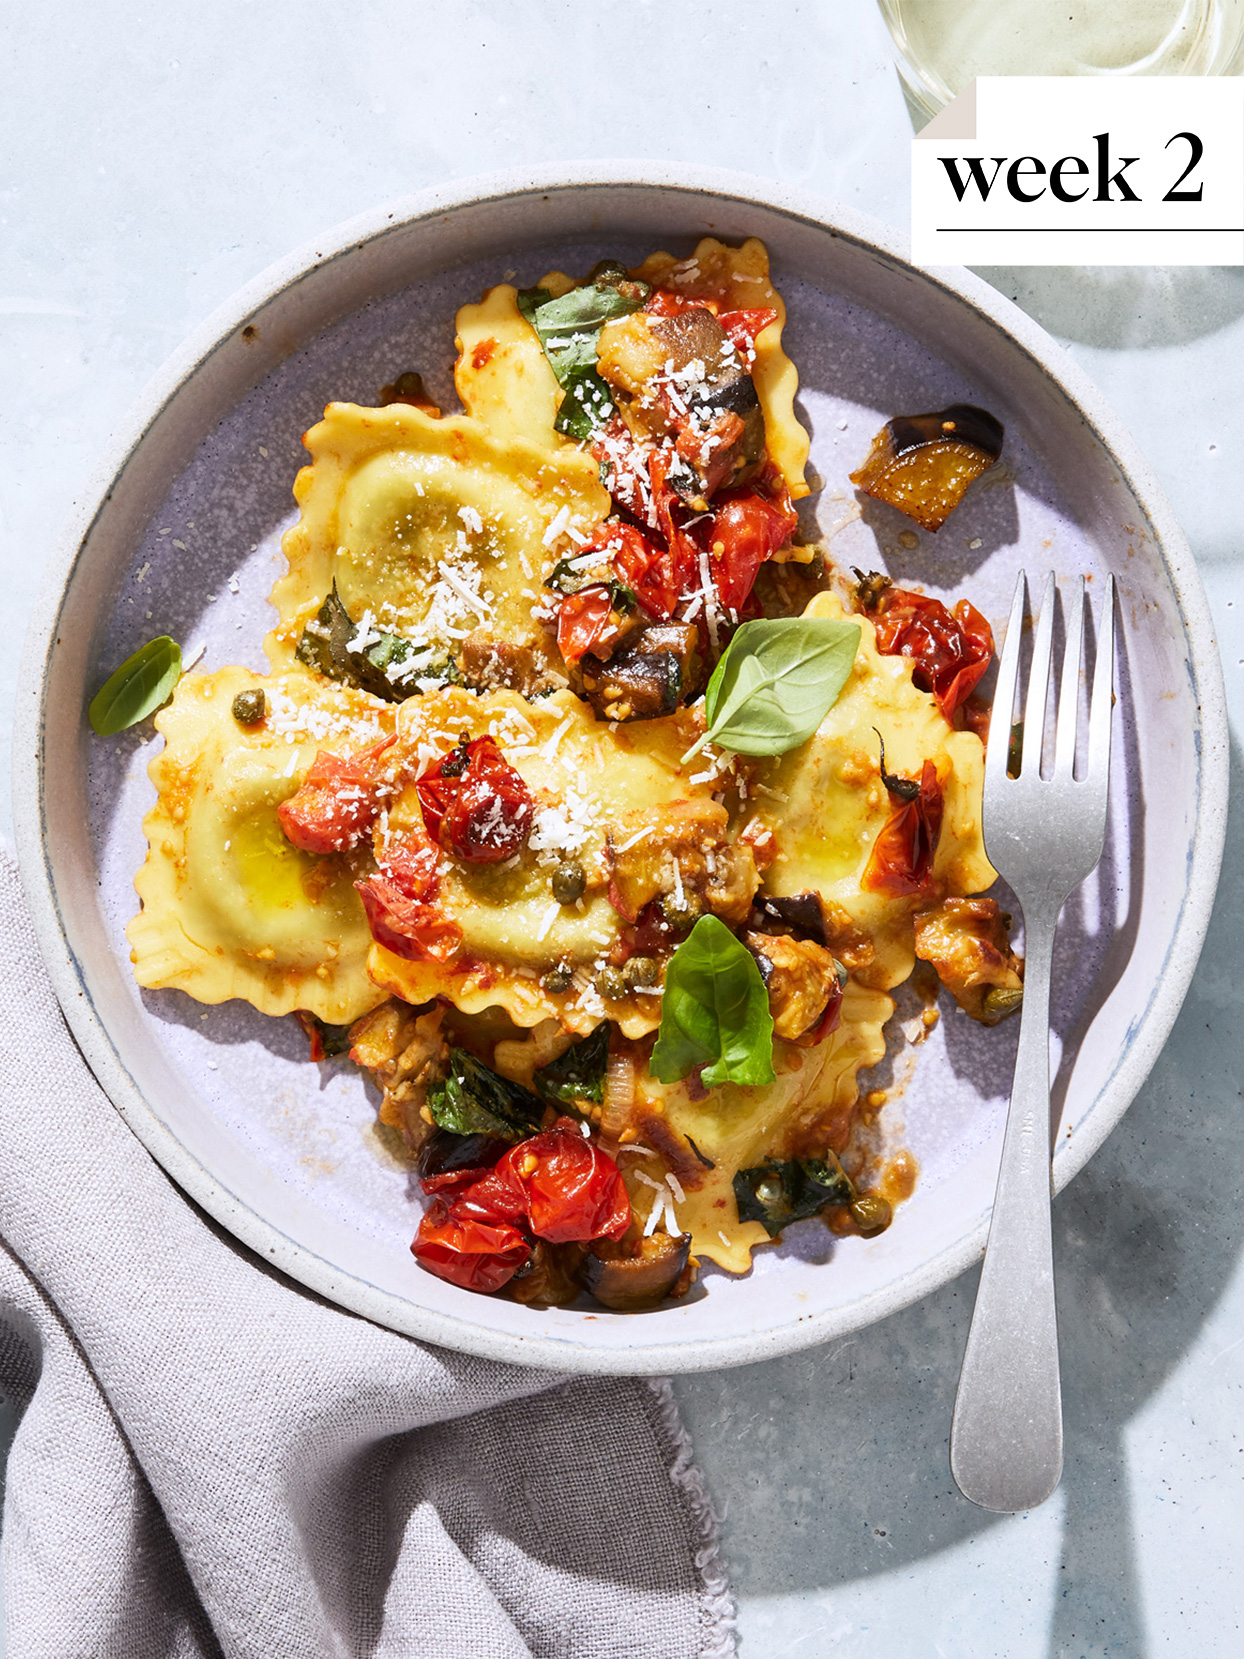 ravioli with roasted eggplant, tomatoes, and capers